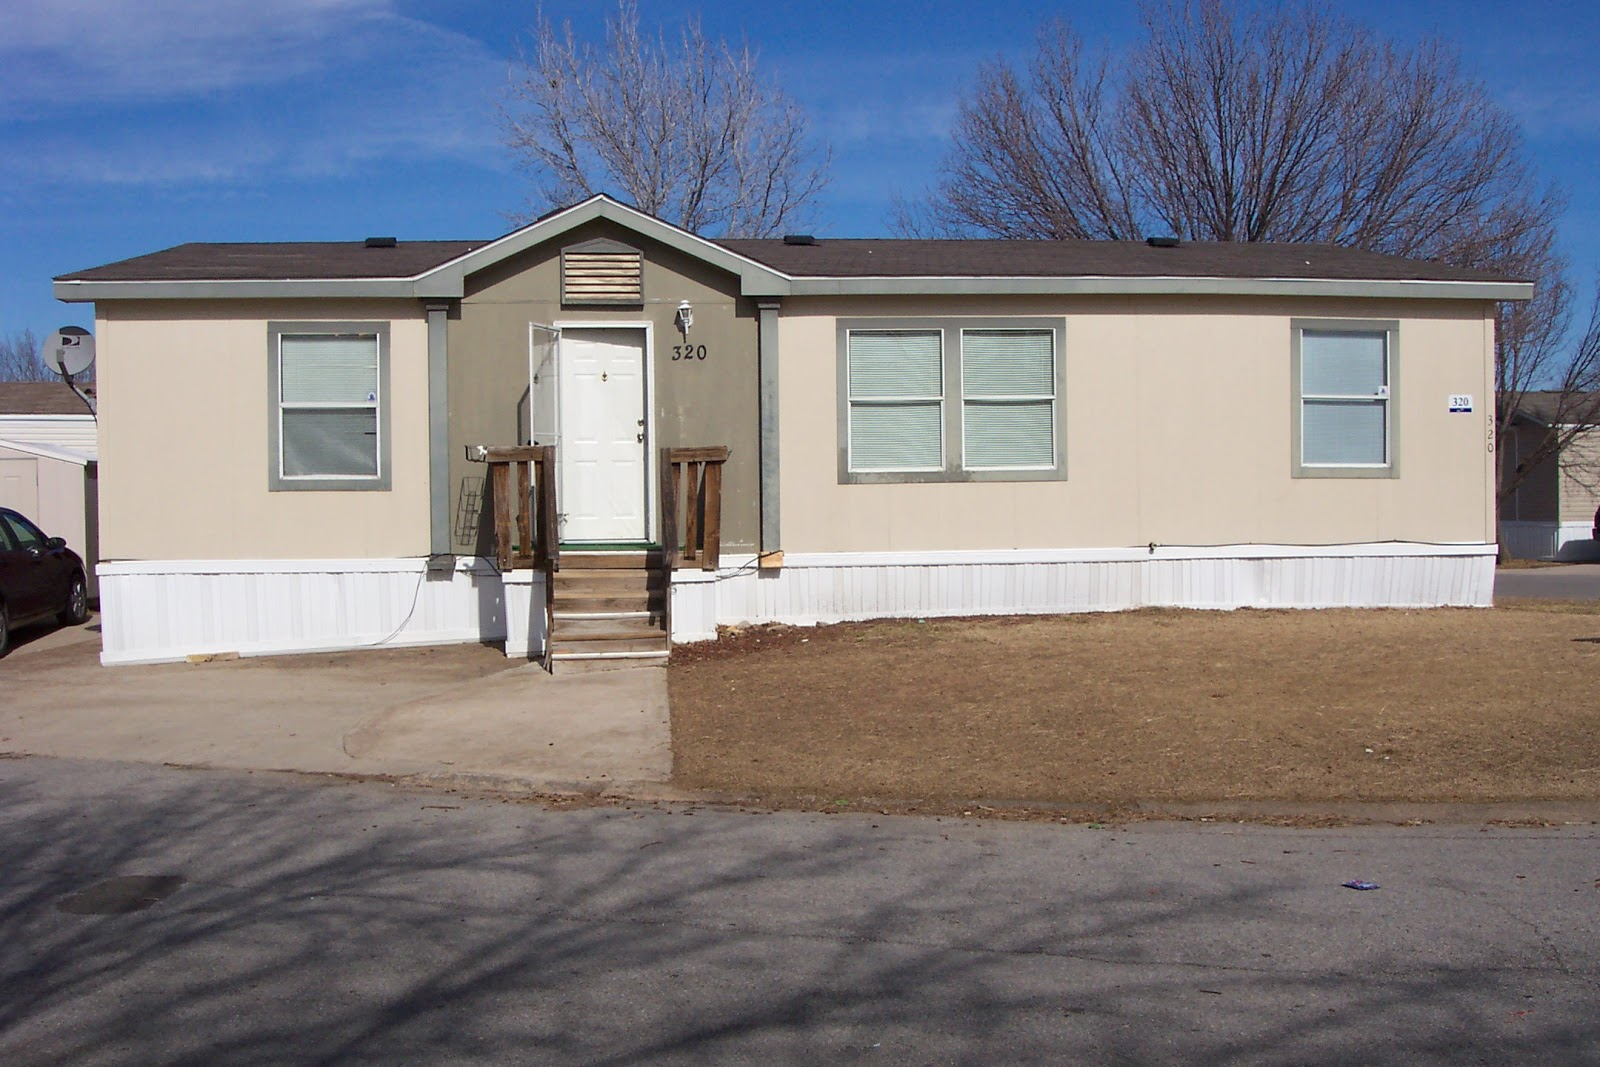 You can OWN your own 3 bedroom DOUBLEWIDE home for UNDER  970 per month   THIS INCLUDES HOME NOTE  LOT RENT  PROPERTY TAXES. DFW Mobile Homes  2000 Doublewide with PRIME cornerlot in